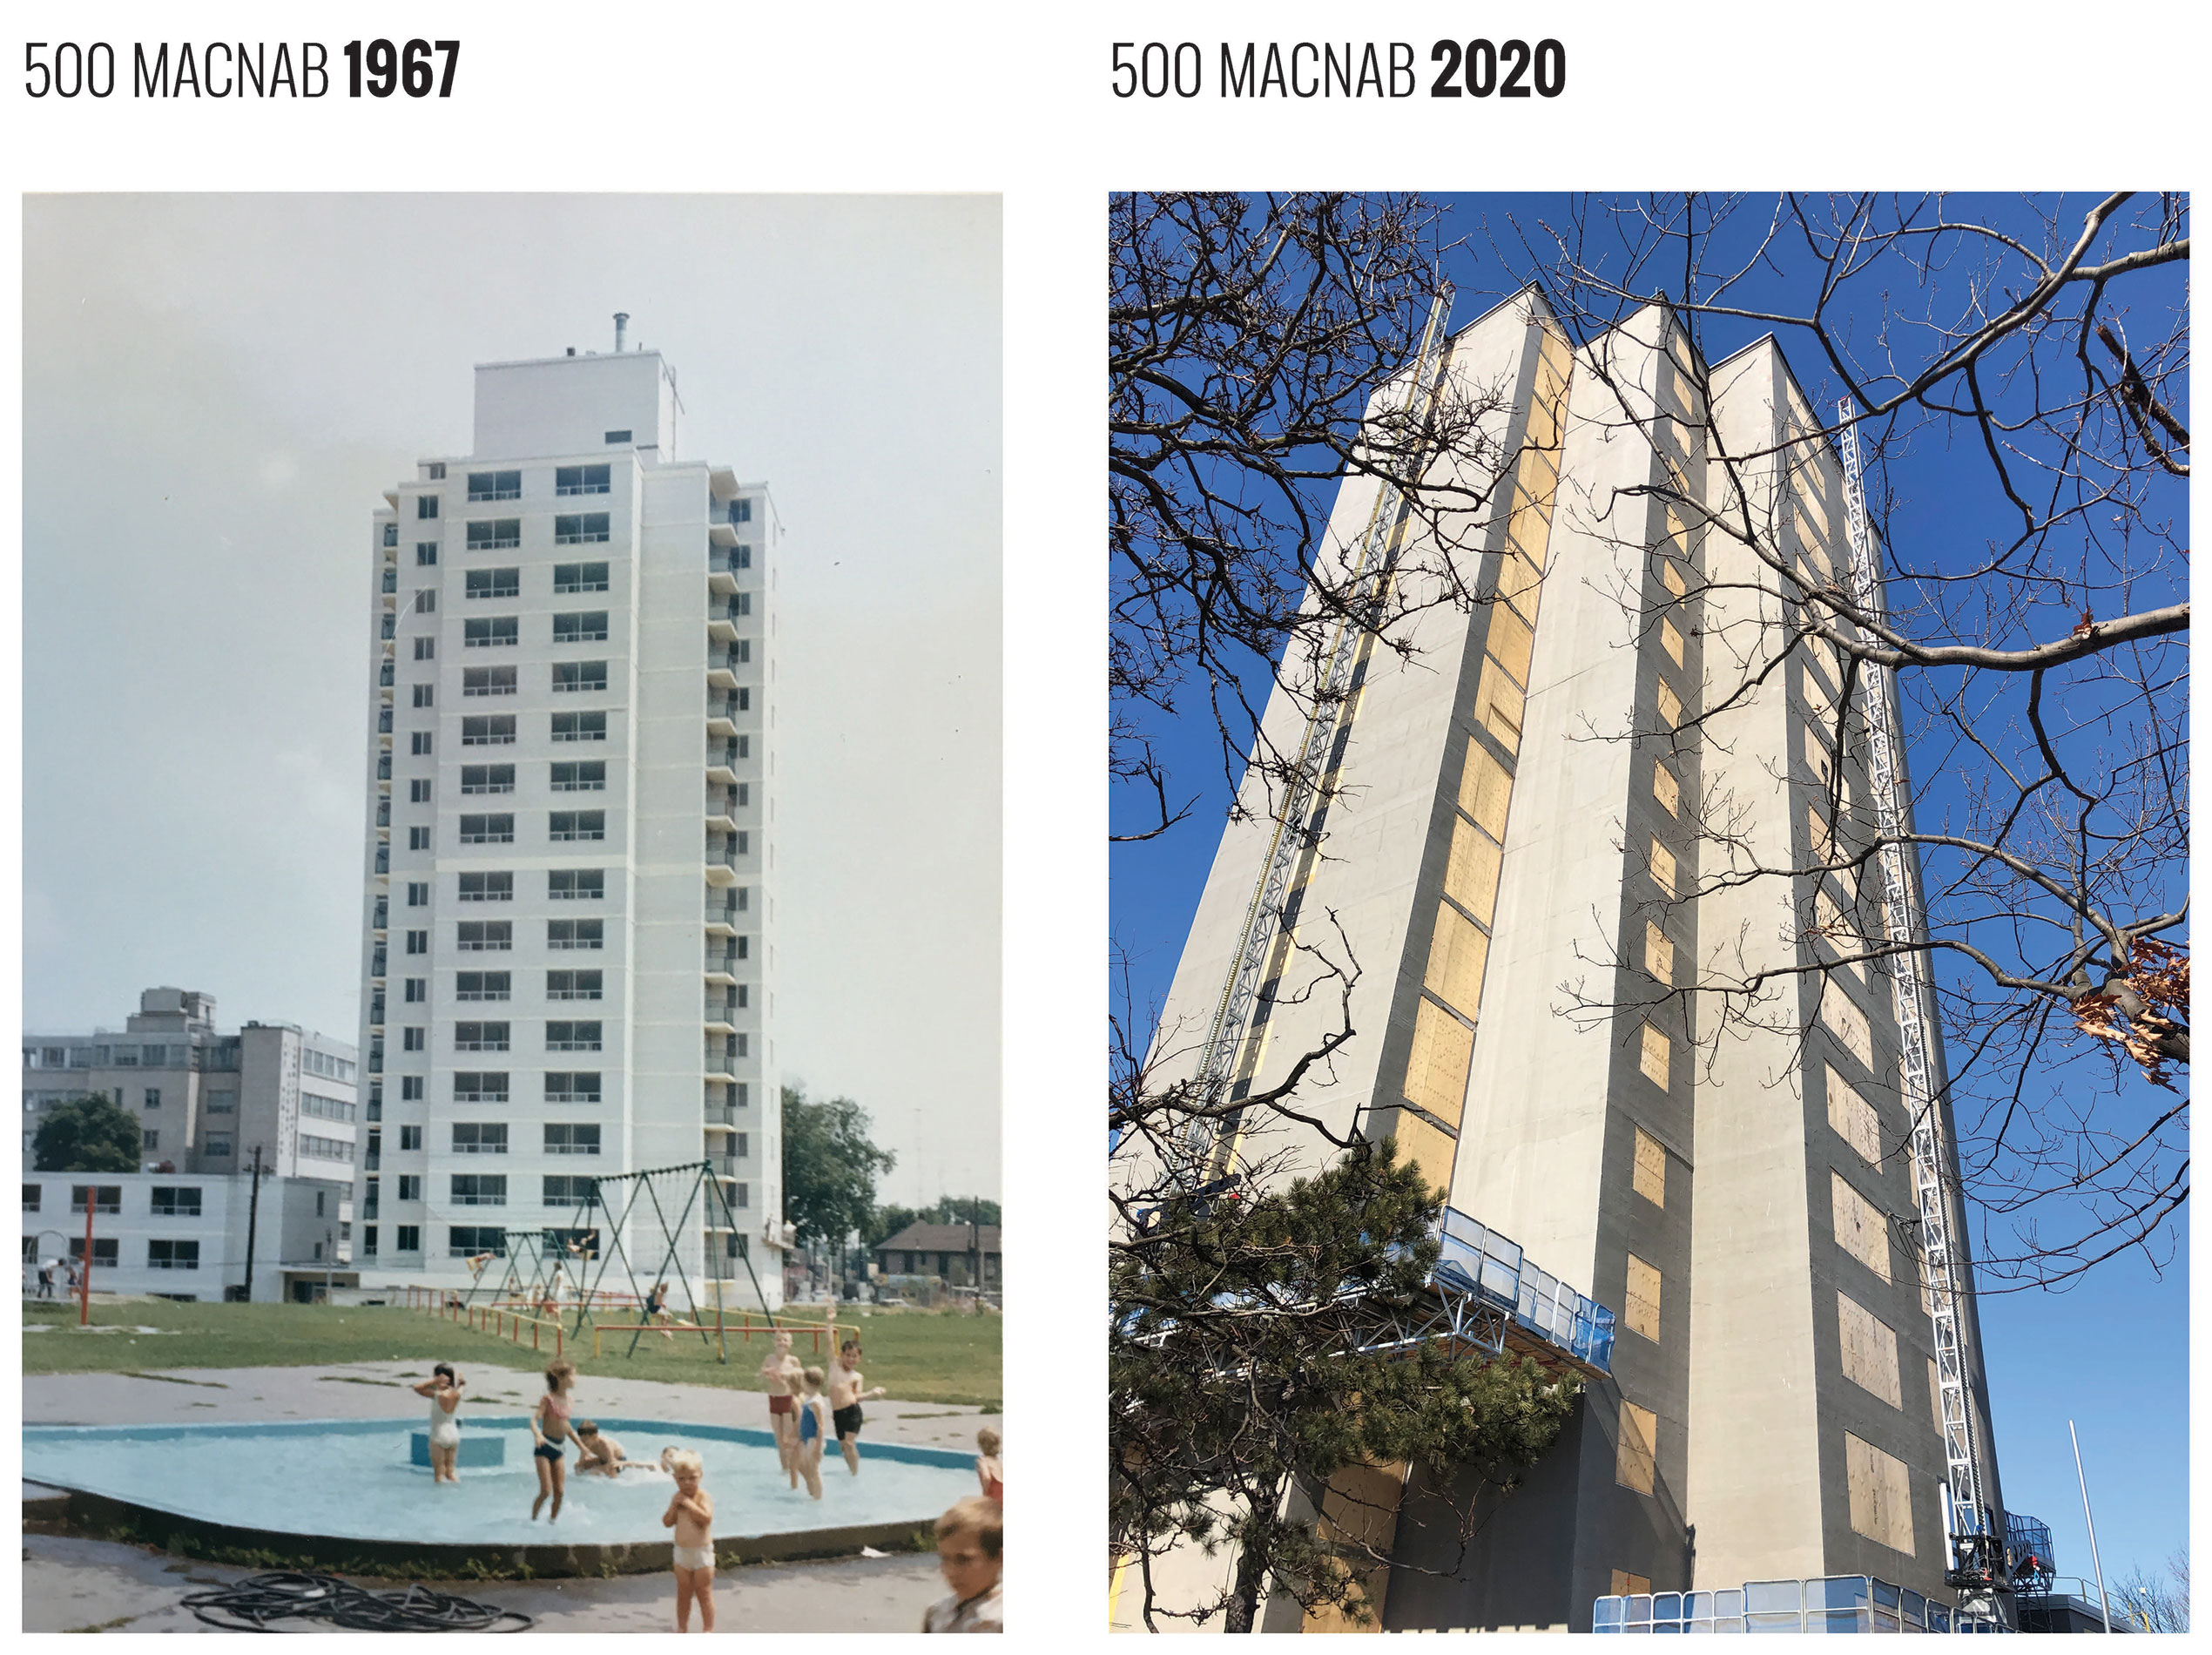 Ken Soble Tower in 1967 compared to 2020